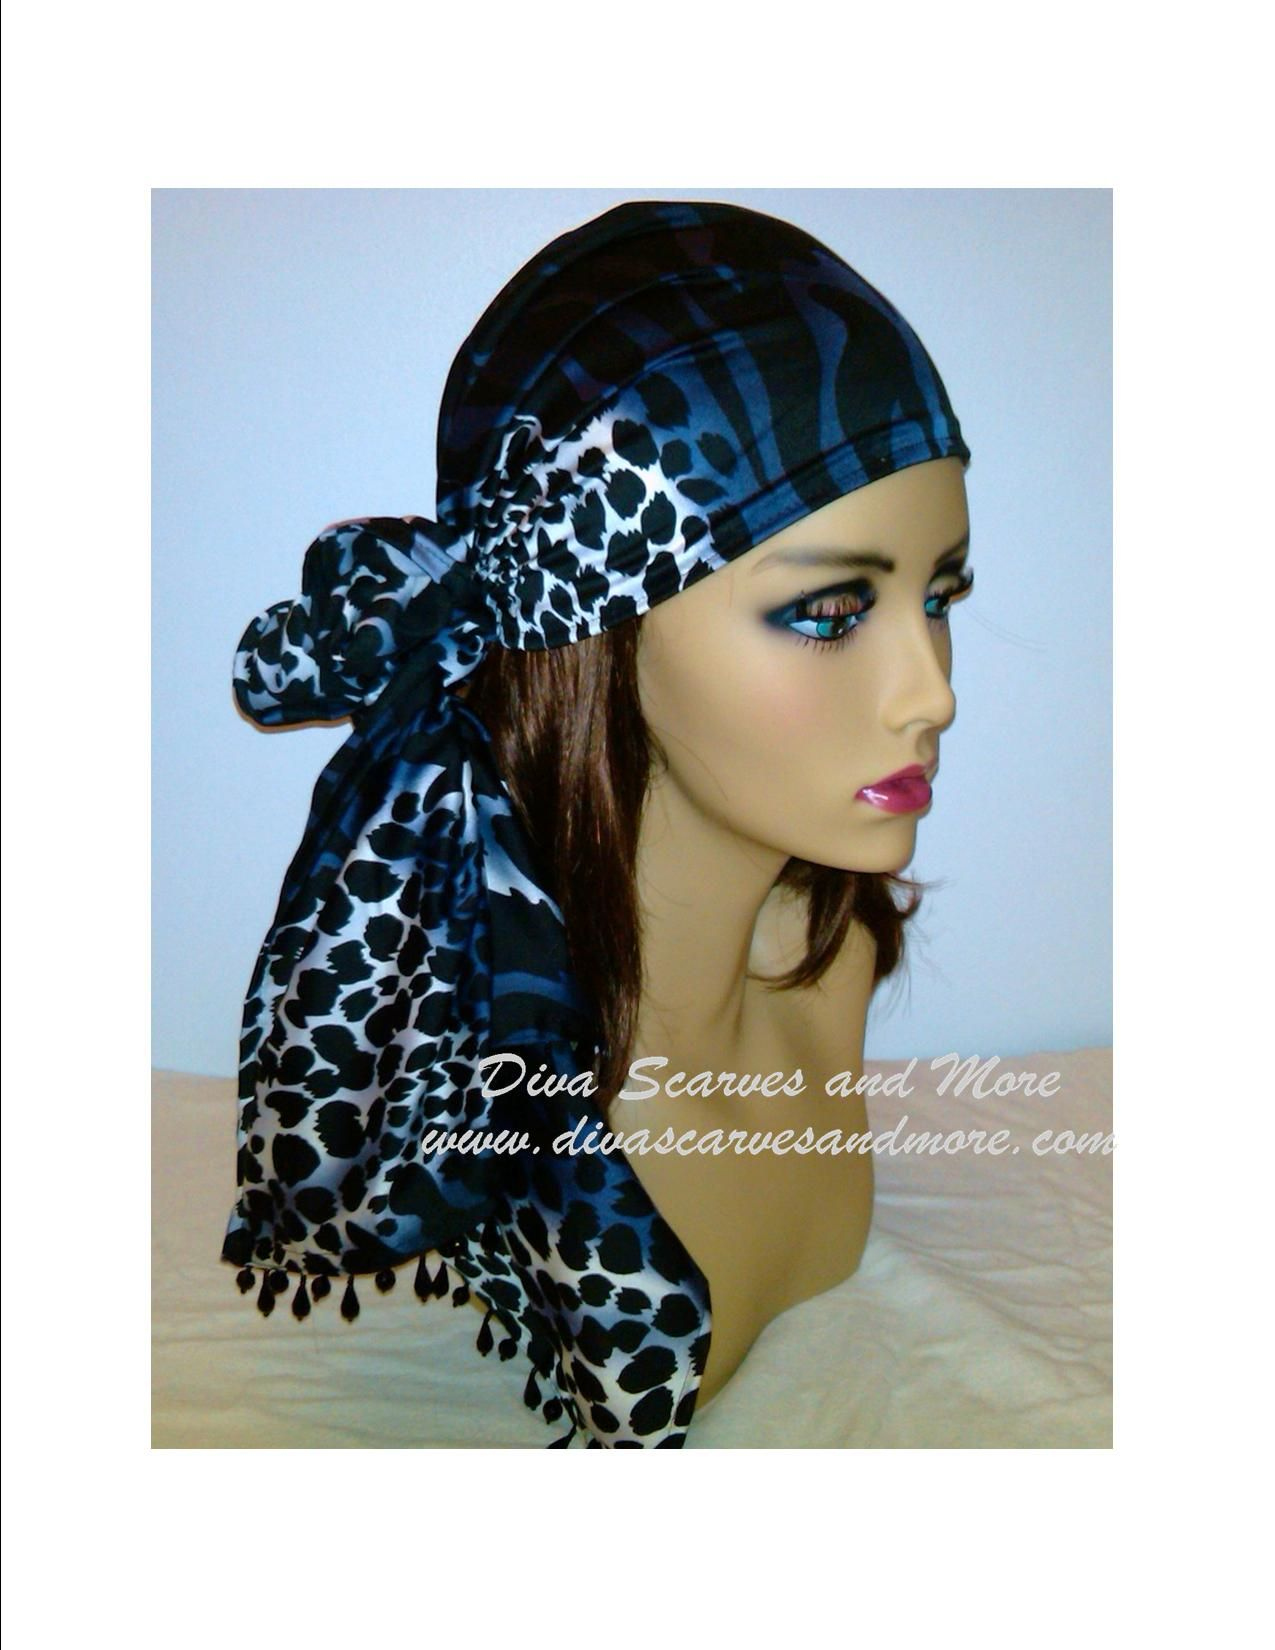 Great For Women To Wear Under Motorcycle Helmets Or Those Battling Hair Loss Due Medical Conditions Such